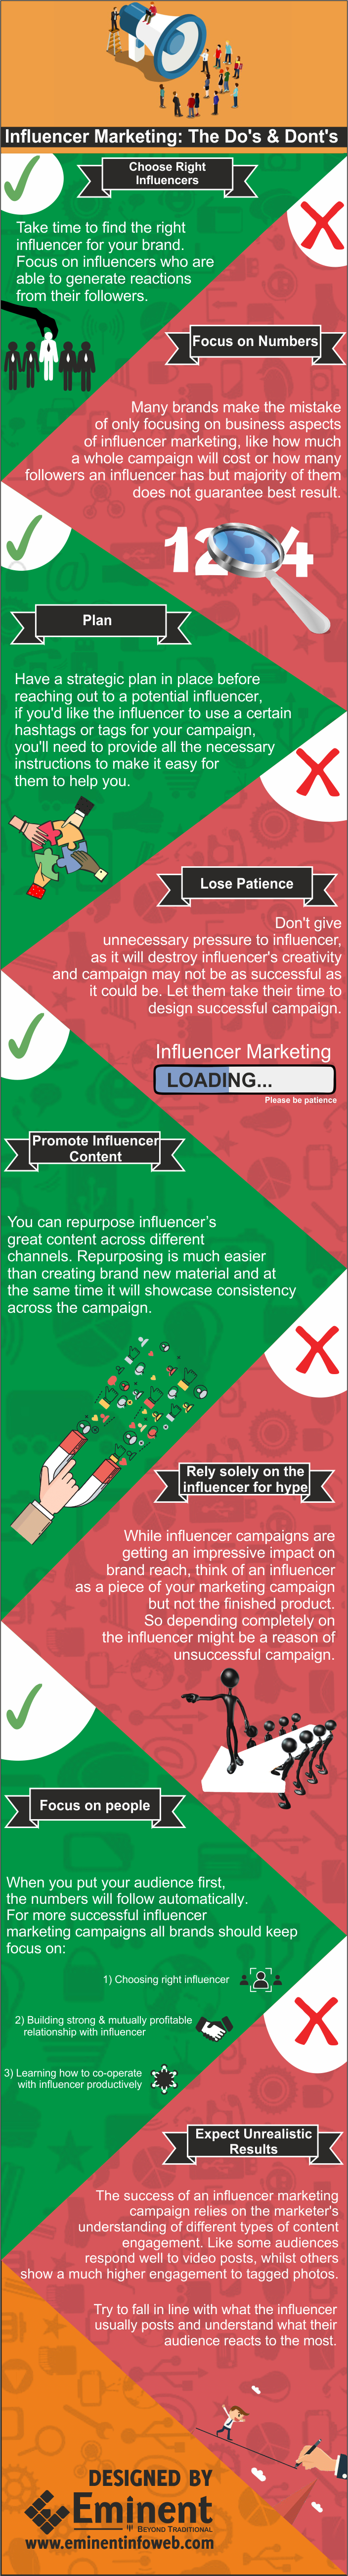 do and donts of influencer marketing